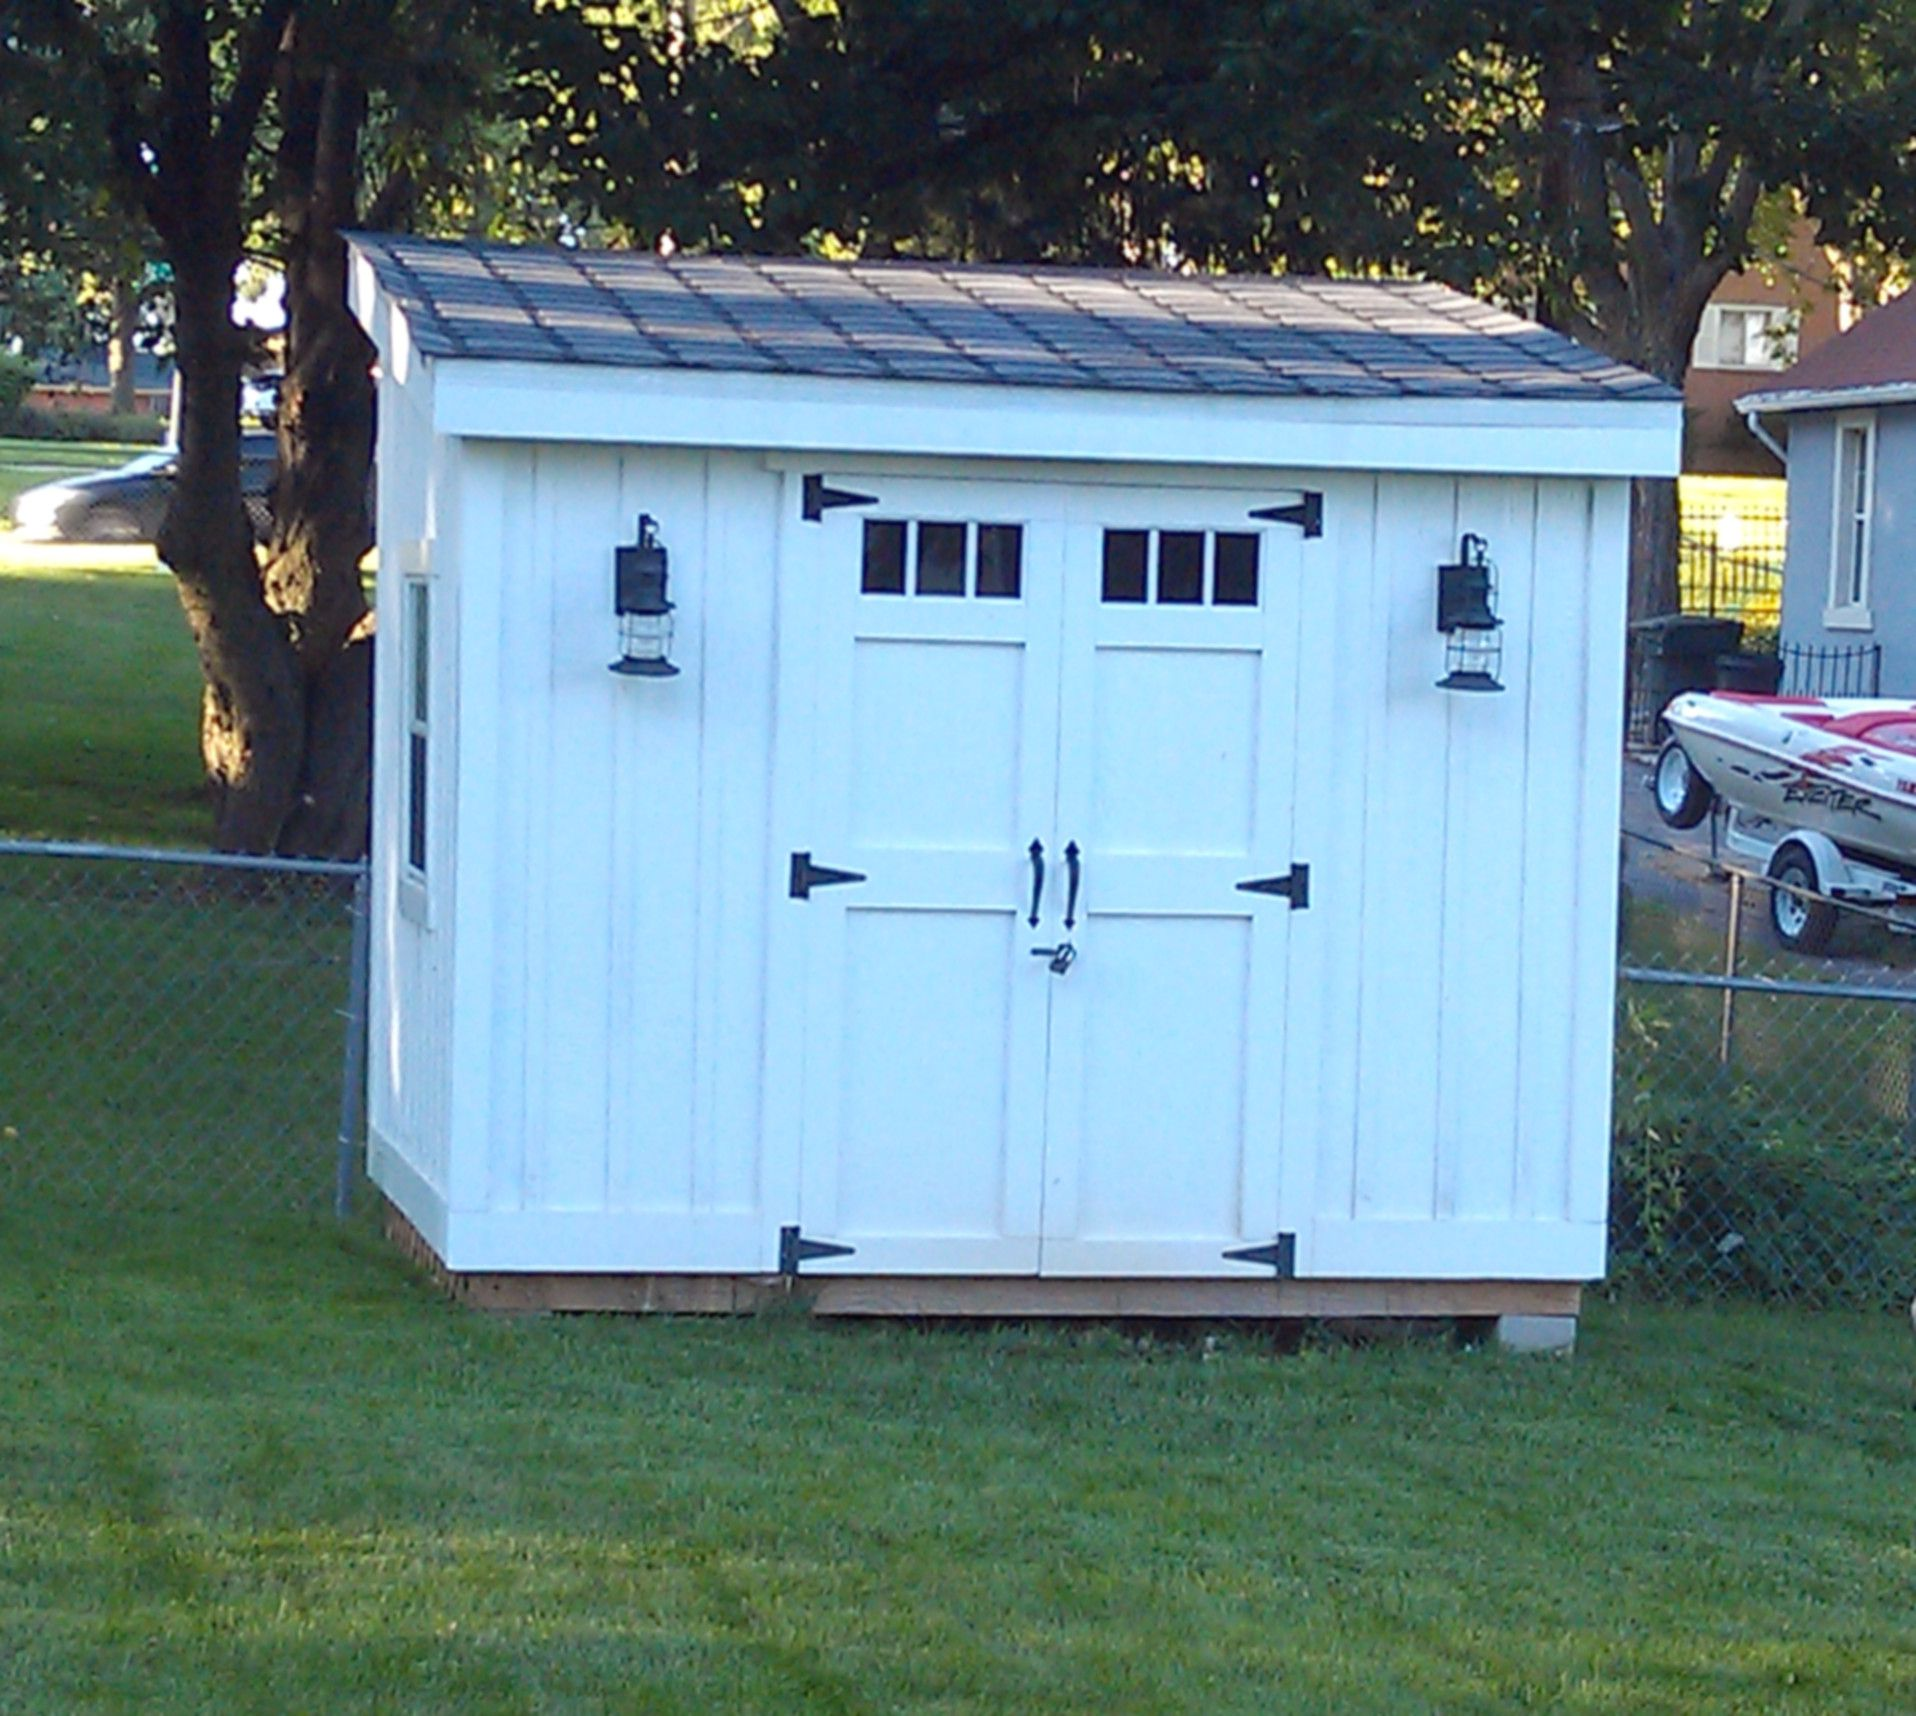 Diy lean to or slanted roof shed built after a couple different plans pictures found online